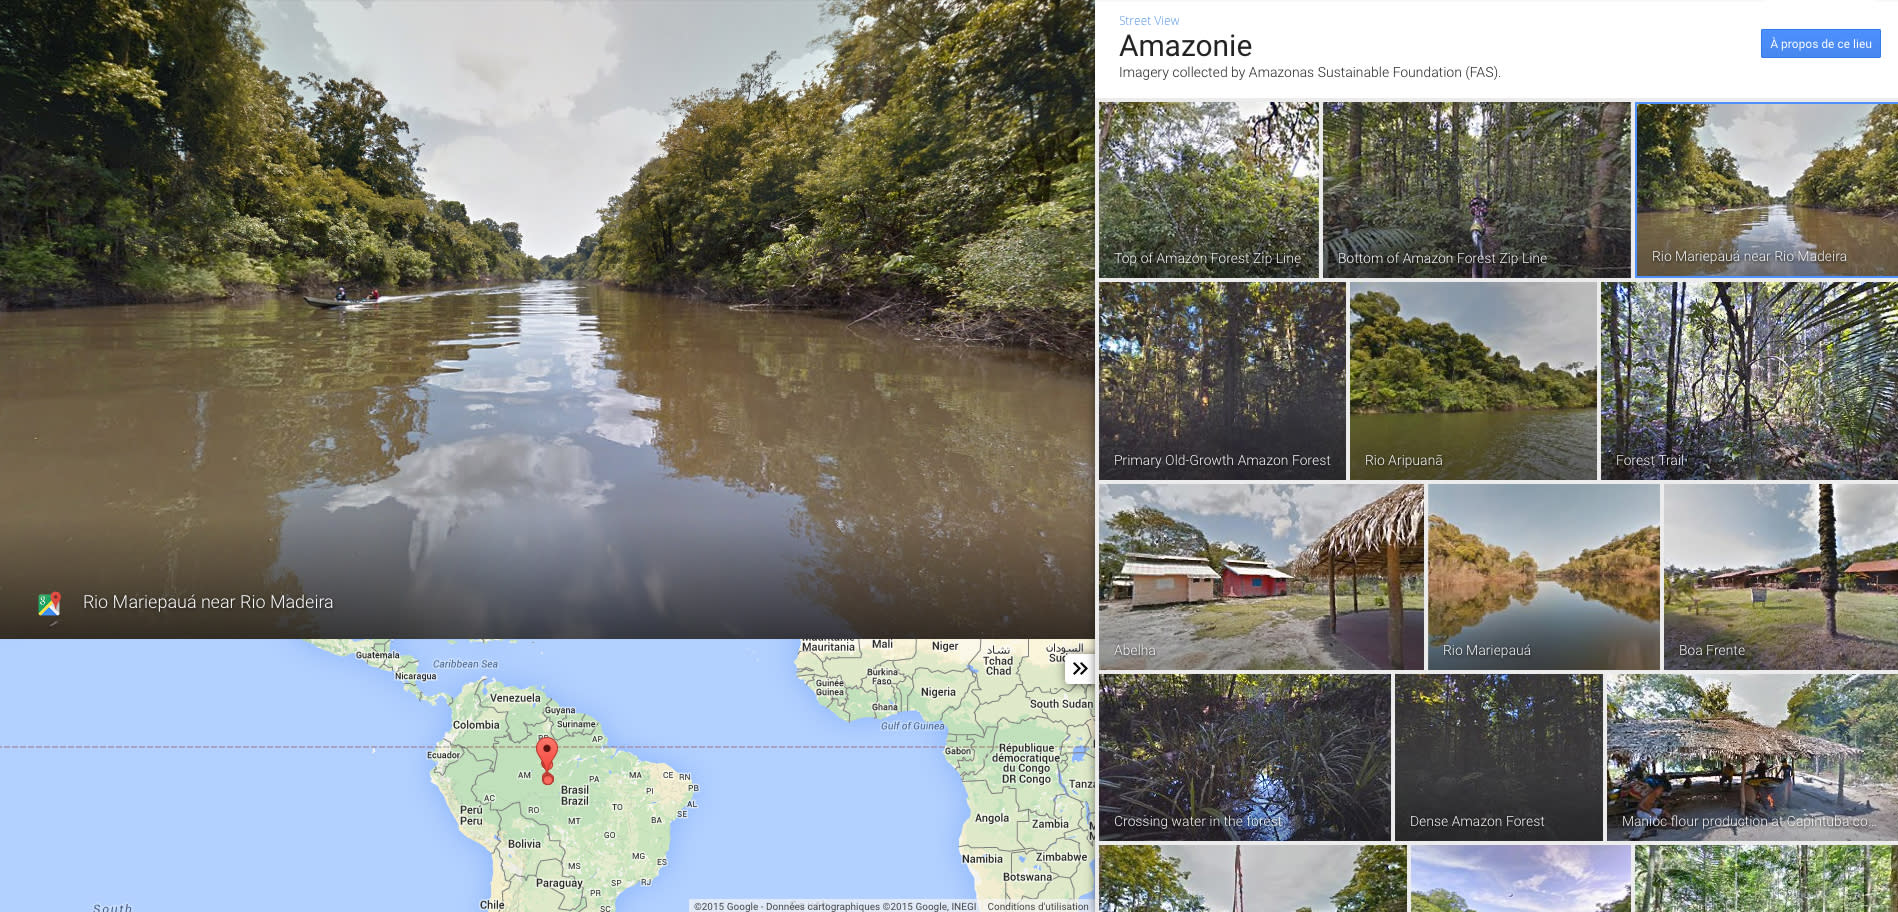 Google brings its Street View into the heart of the Amazon